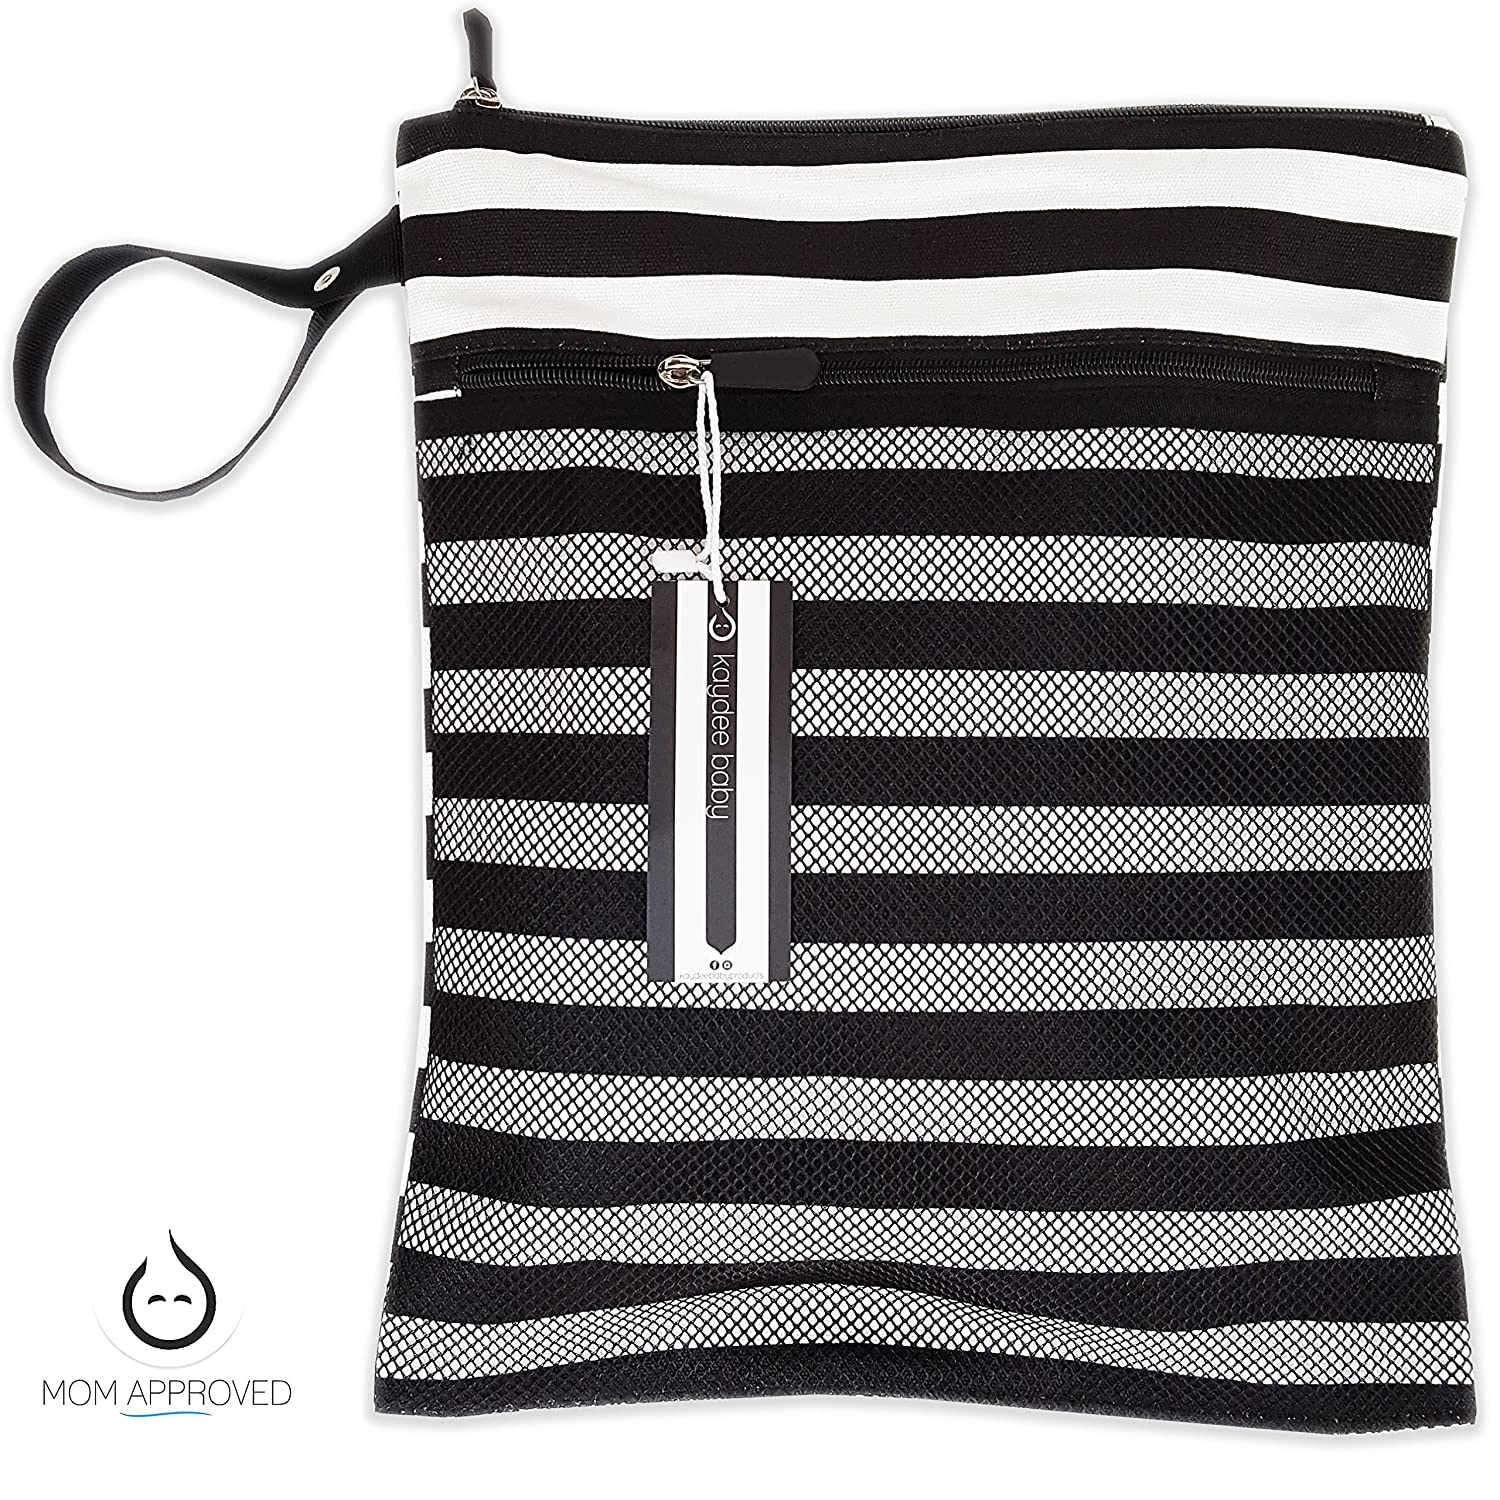 Kaydee Baby Canvas Wet Dry Cloth Diaper Swimsuit Bag Mesh Outer Pocket for Dry Items Black and White Stripe Black White Stripe Perfect Registry Gift Waterproof PUL for Damp Clothes